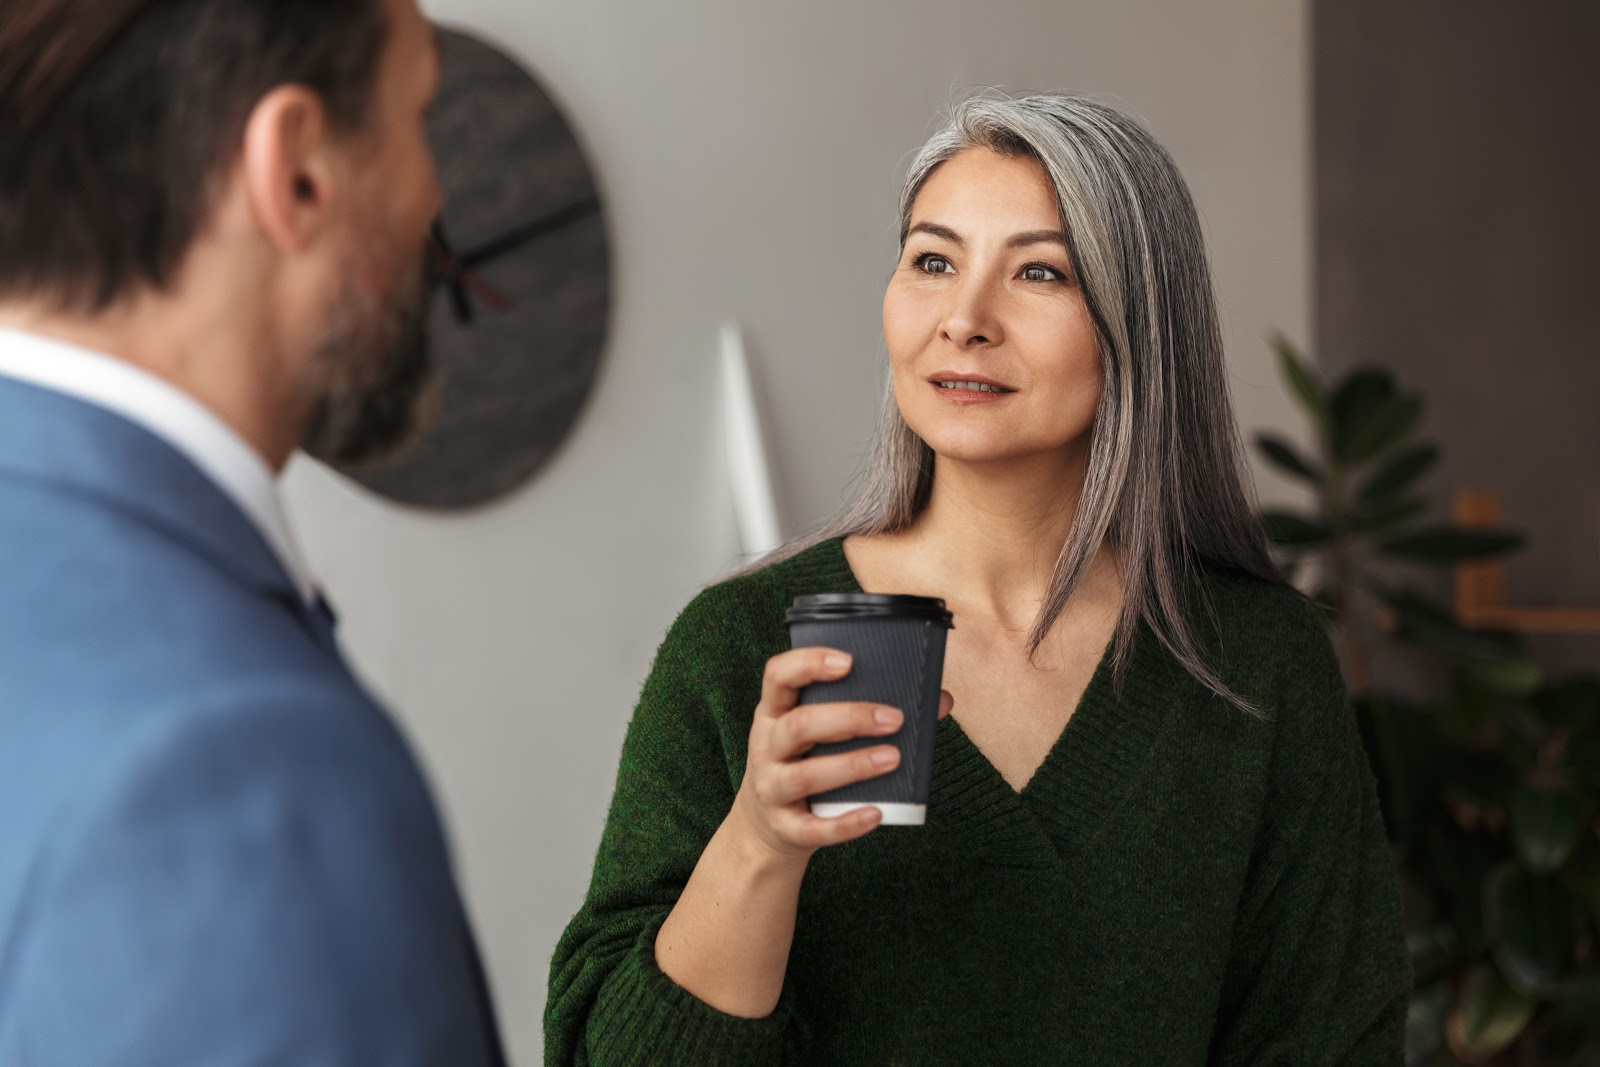 Woman looks at colleague while holding cup of coffee